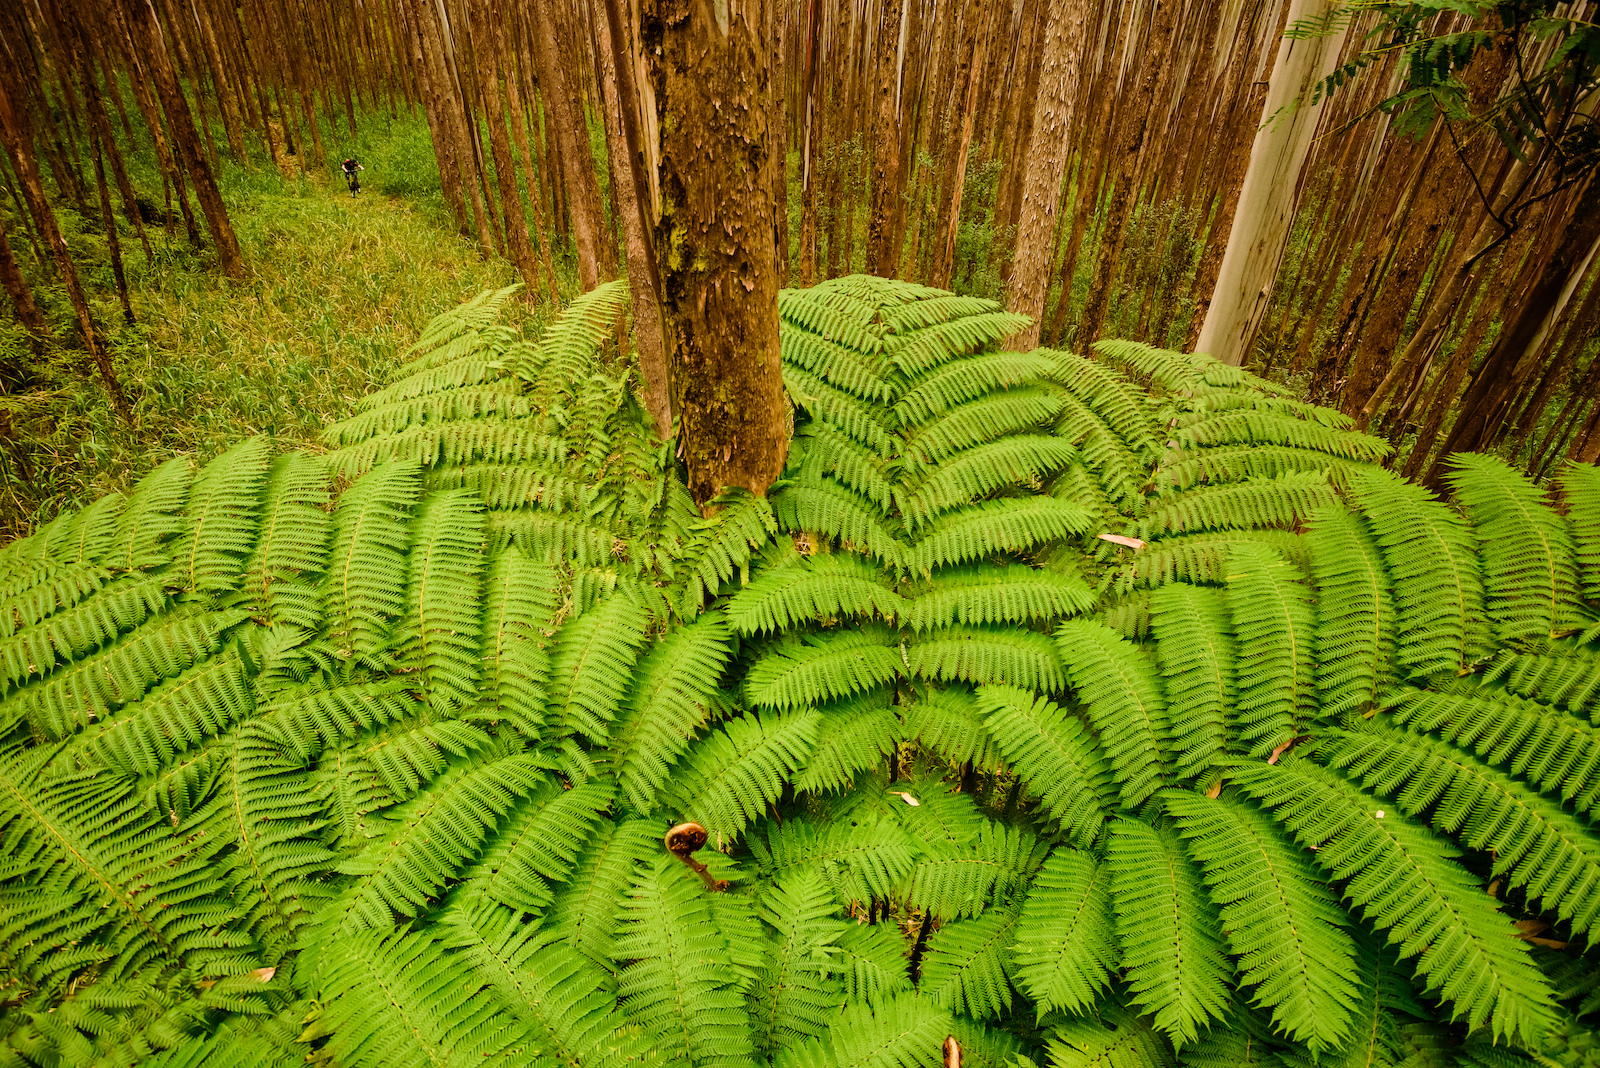 Jurassic ferns Image by Bruno Long